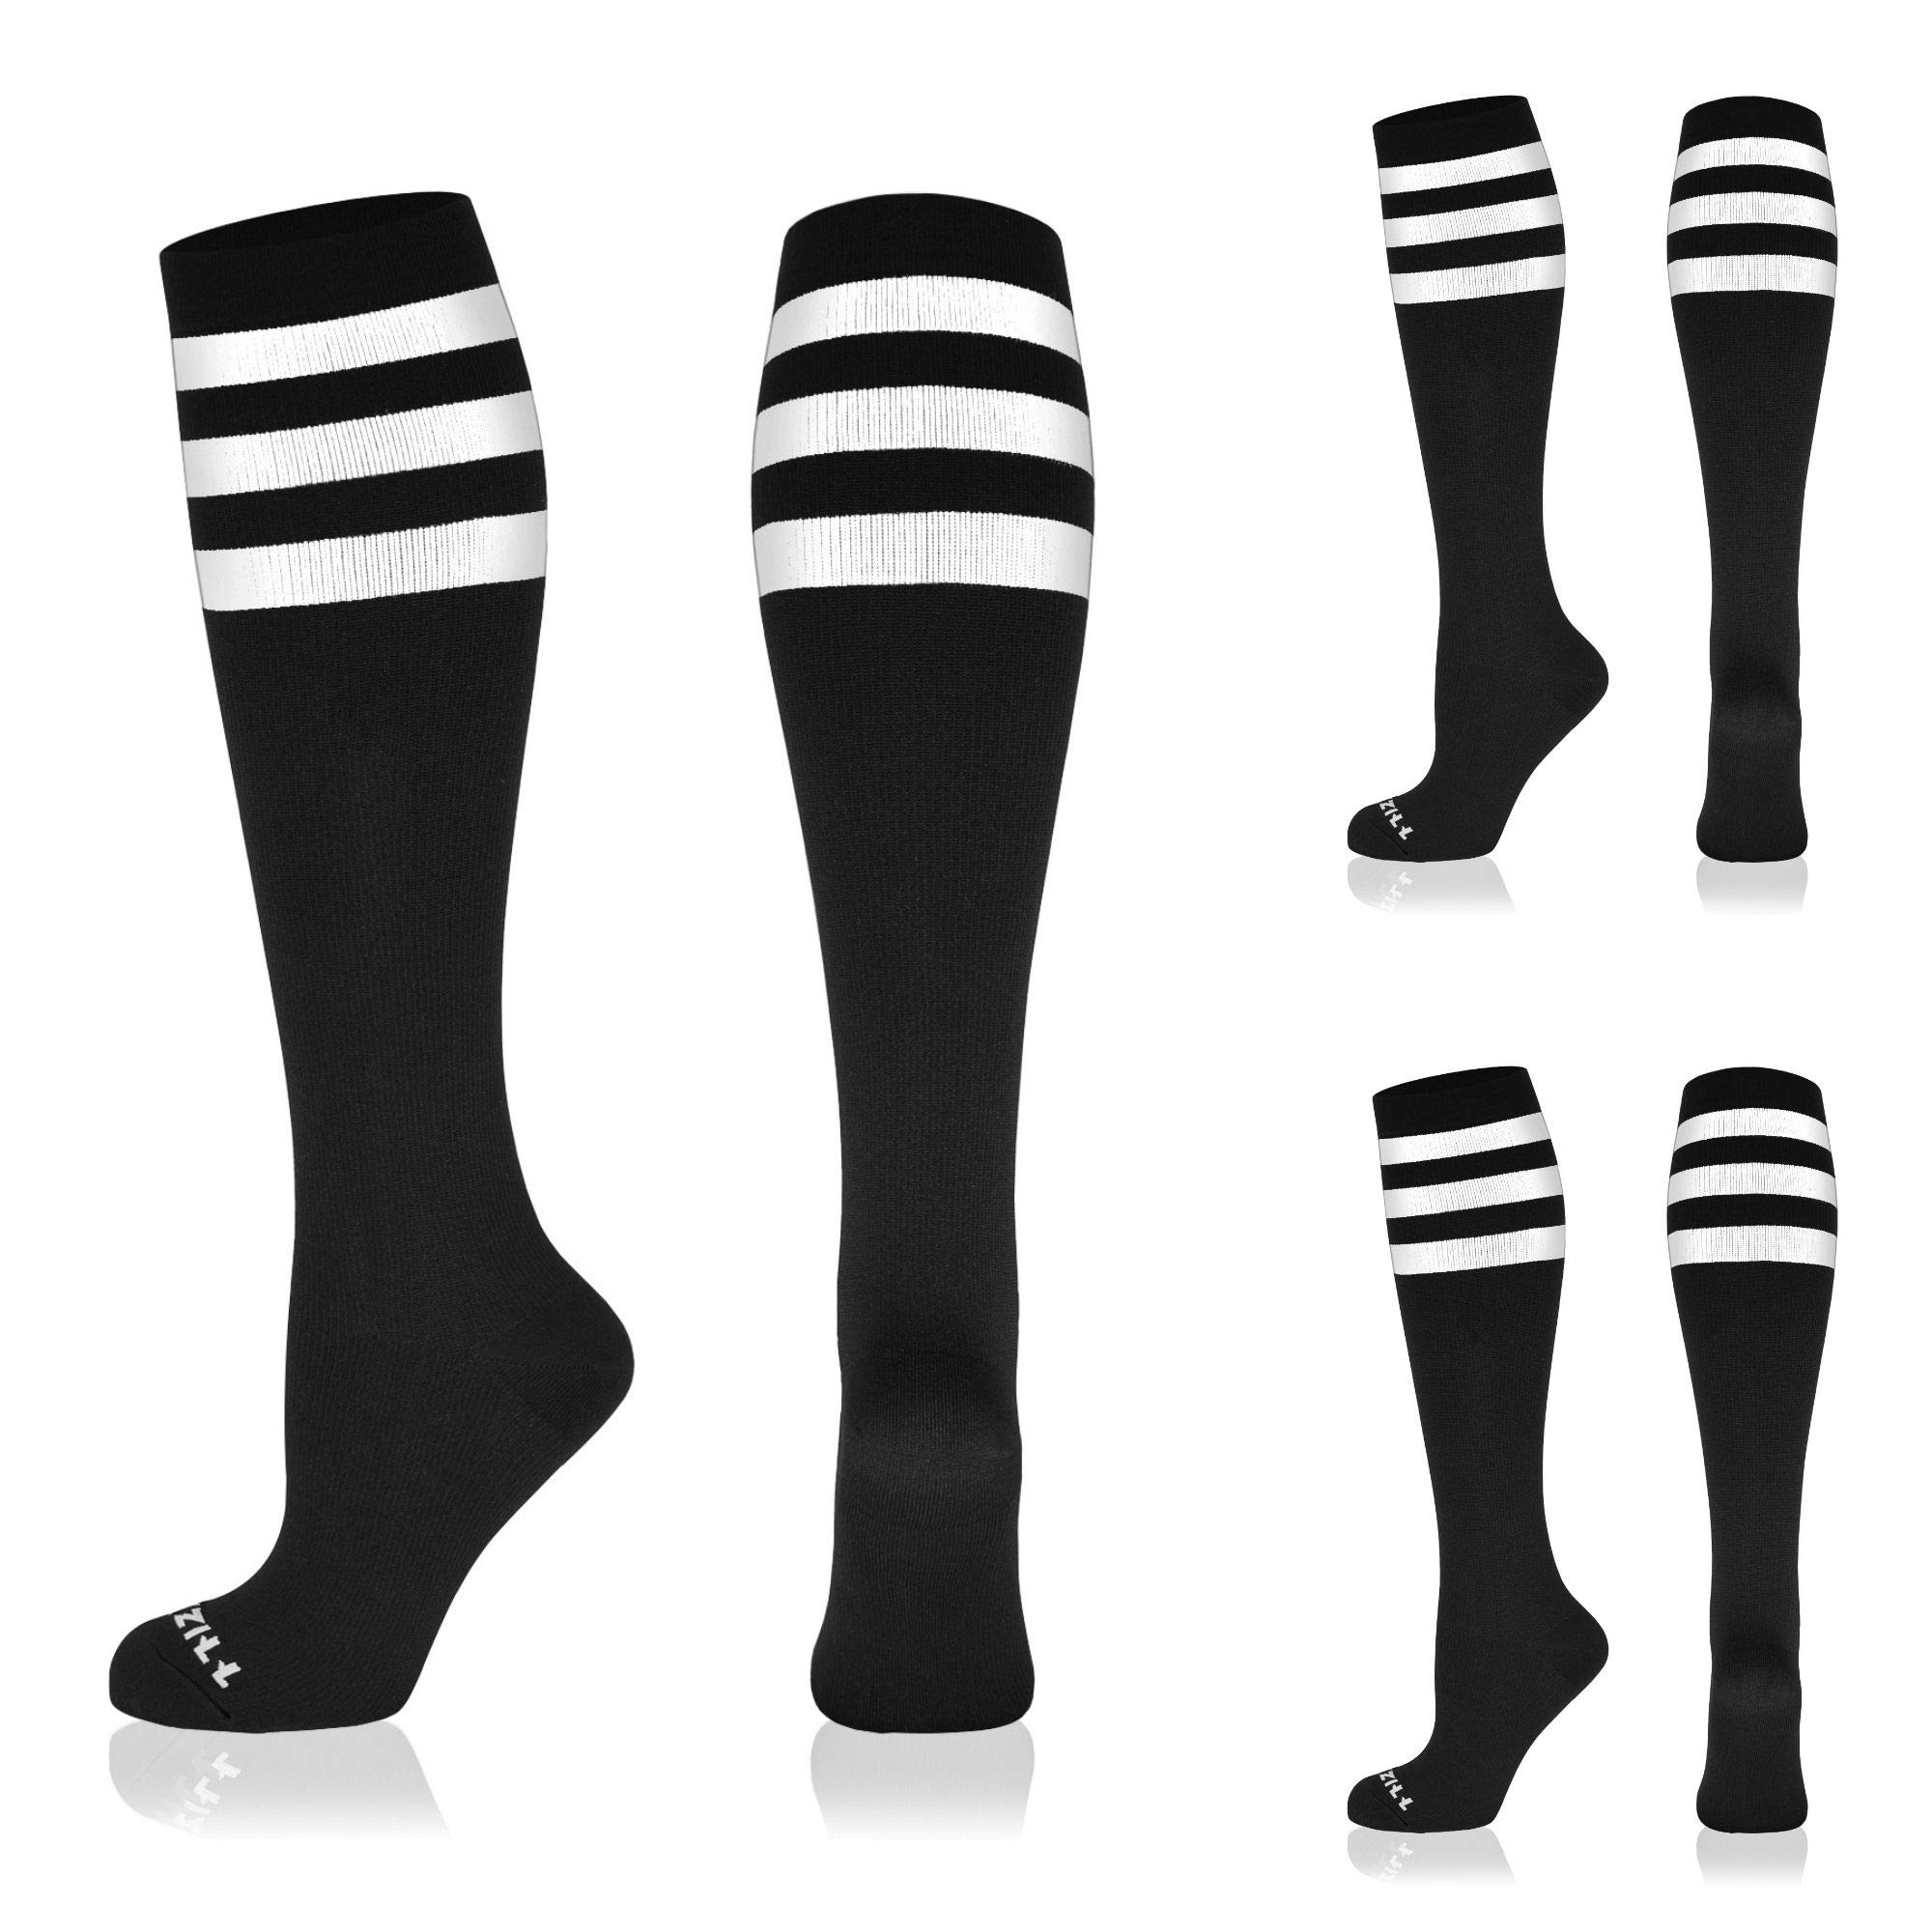 3 Pairs NEWZILL Compression Socks for Women & Men Circulation 20-30 mmHg is Best Support for Athletic Running Cycling